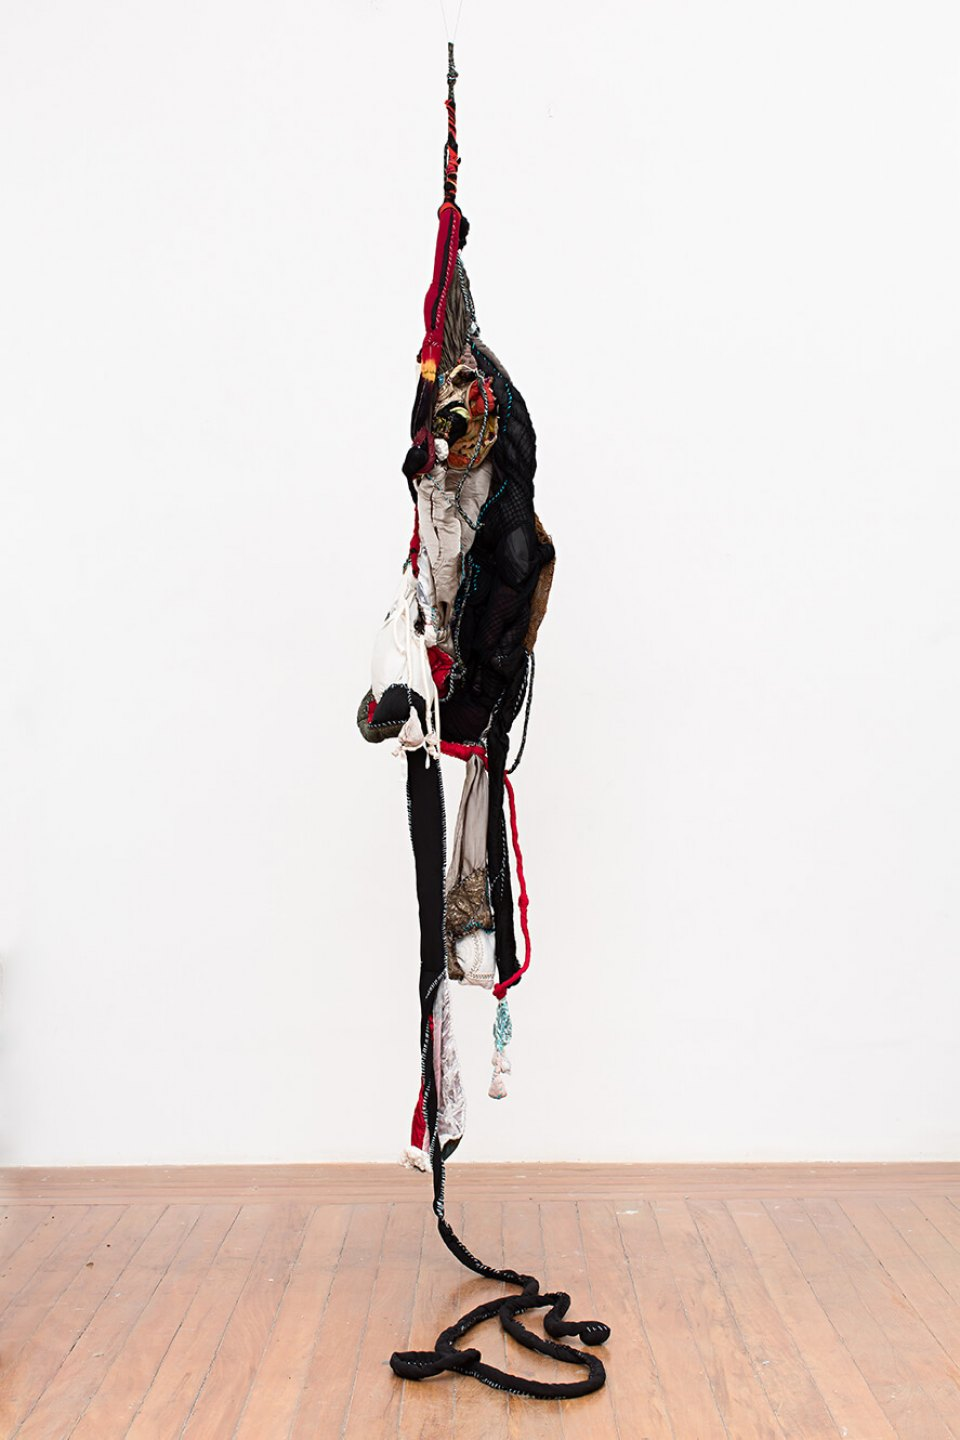 Sonia Gomes, <em>untitled, from Lugar series</em>, 2013, stitching, bindings, different fabrics and laces, 260 × 40 ø cm - Mendes Wood DM